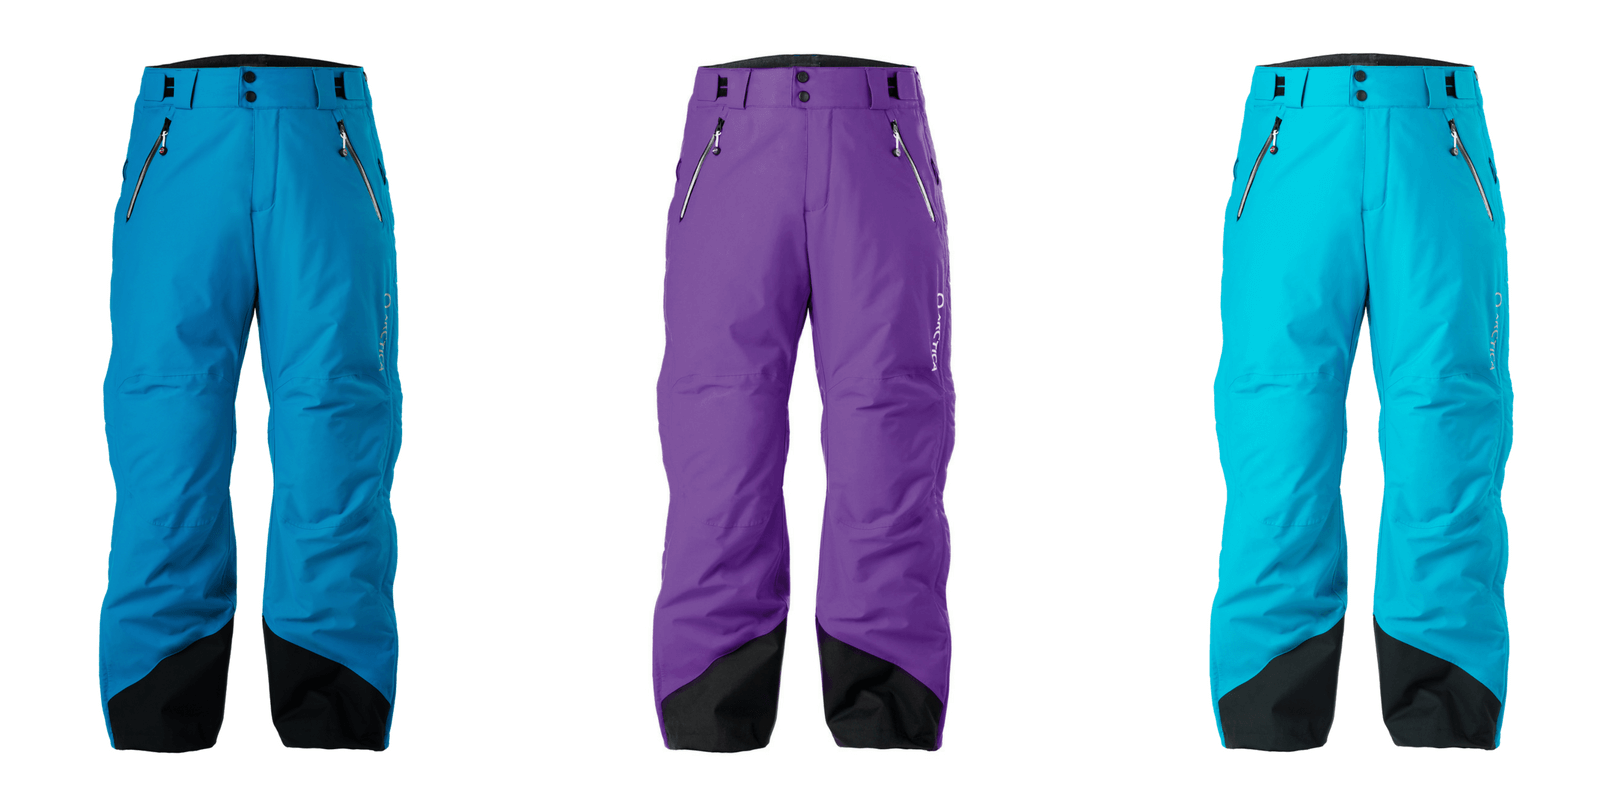 Arctica Side Zip 2.0 pant colors for 2017-18. Ocean, Purple and Sky.